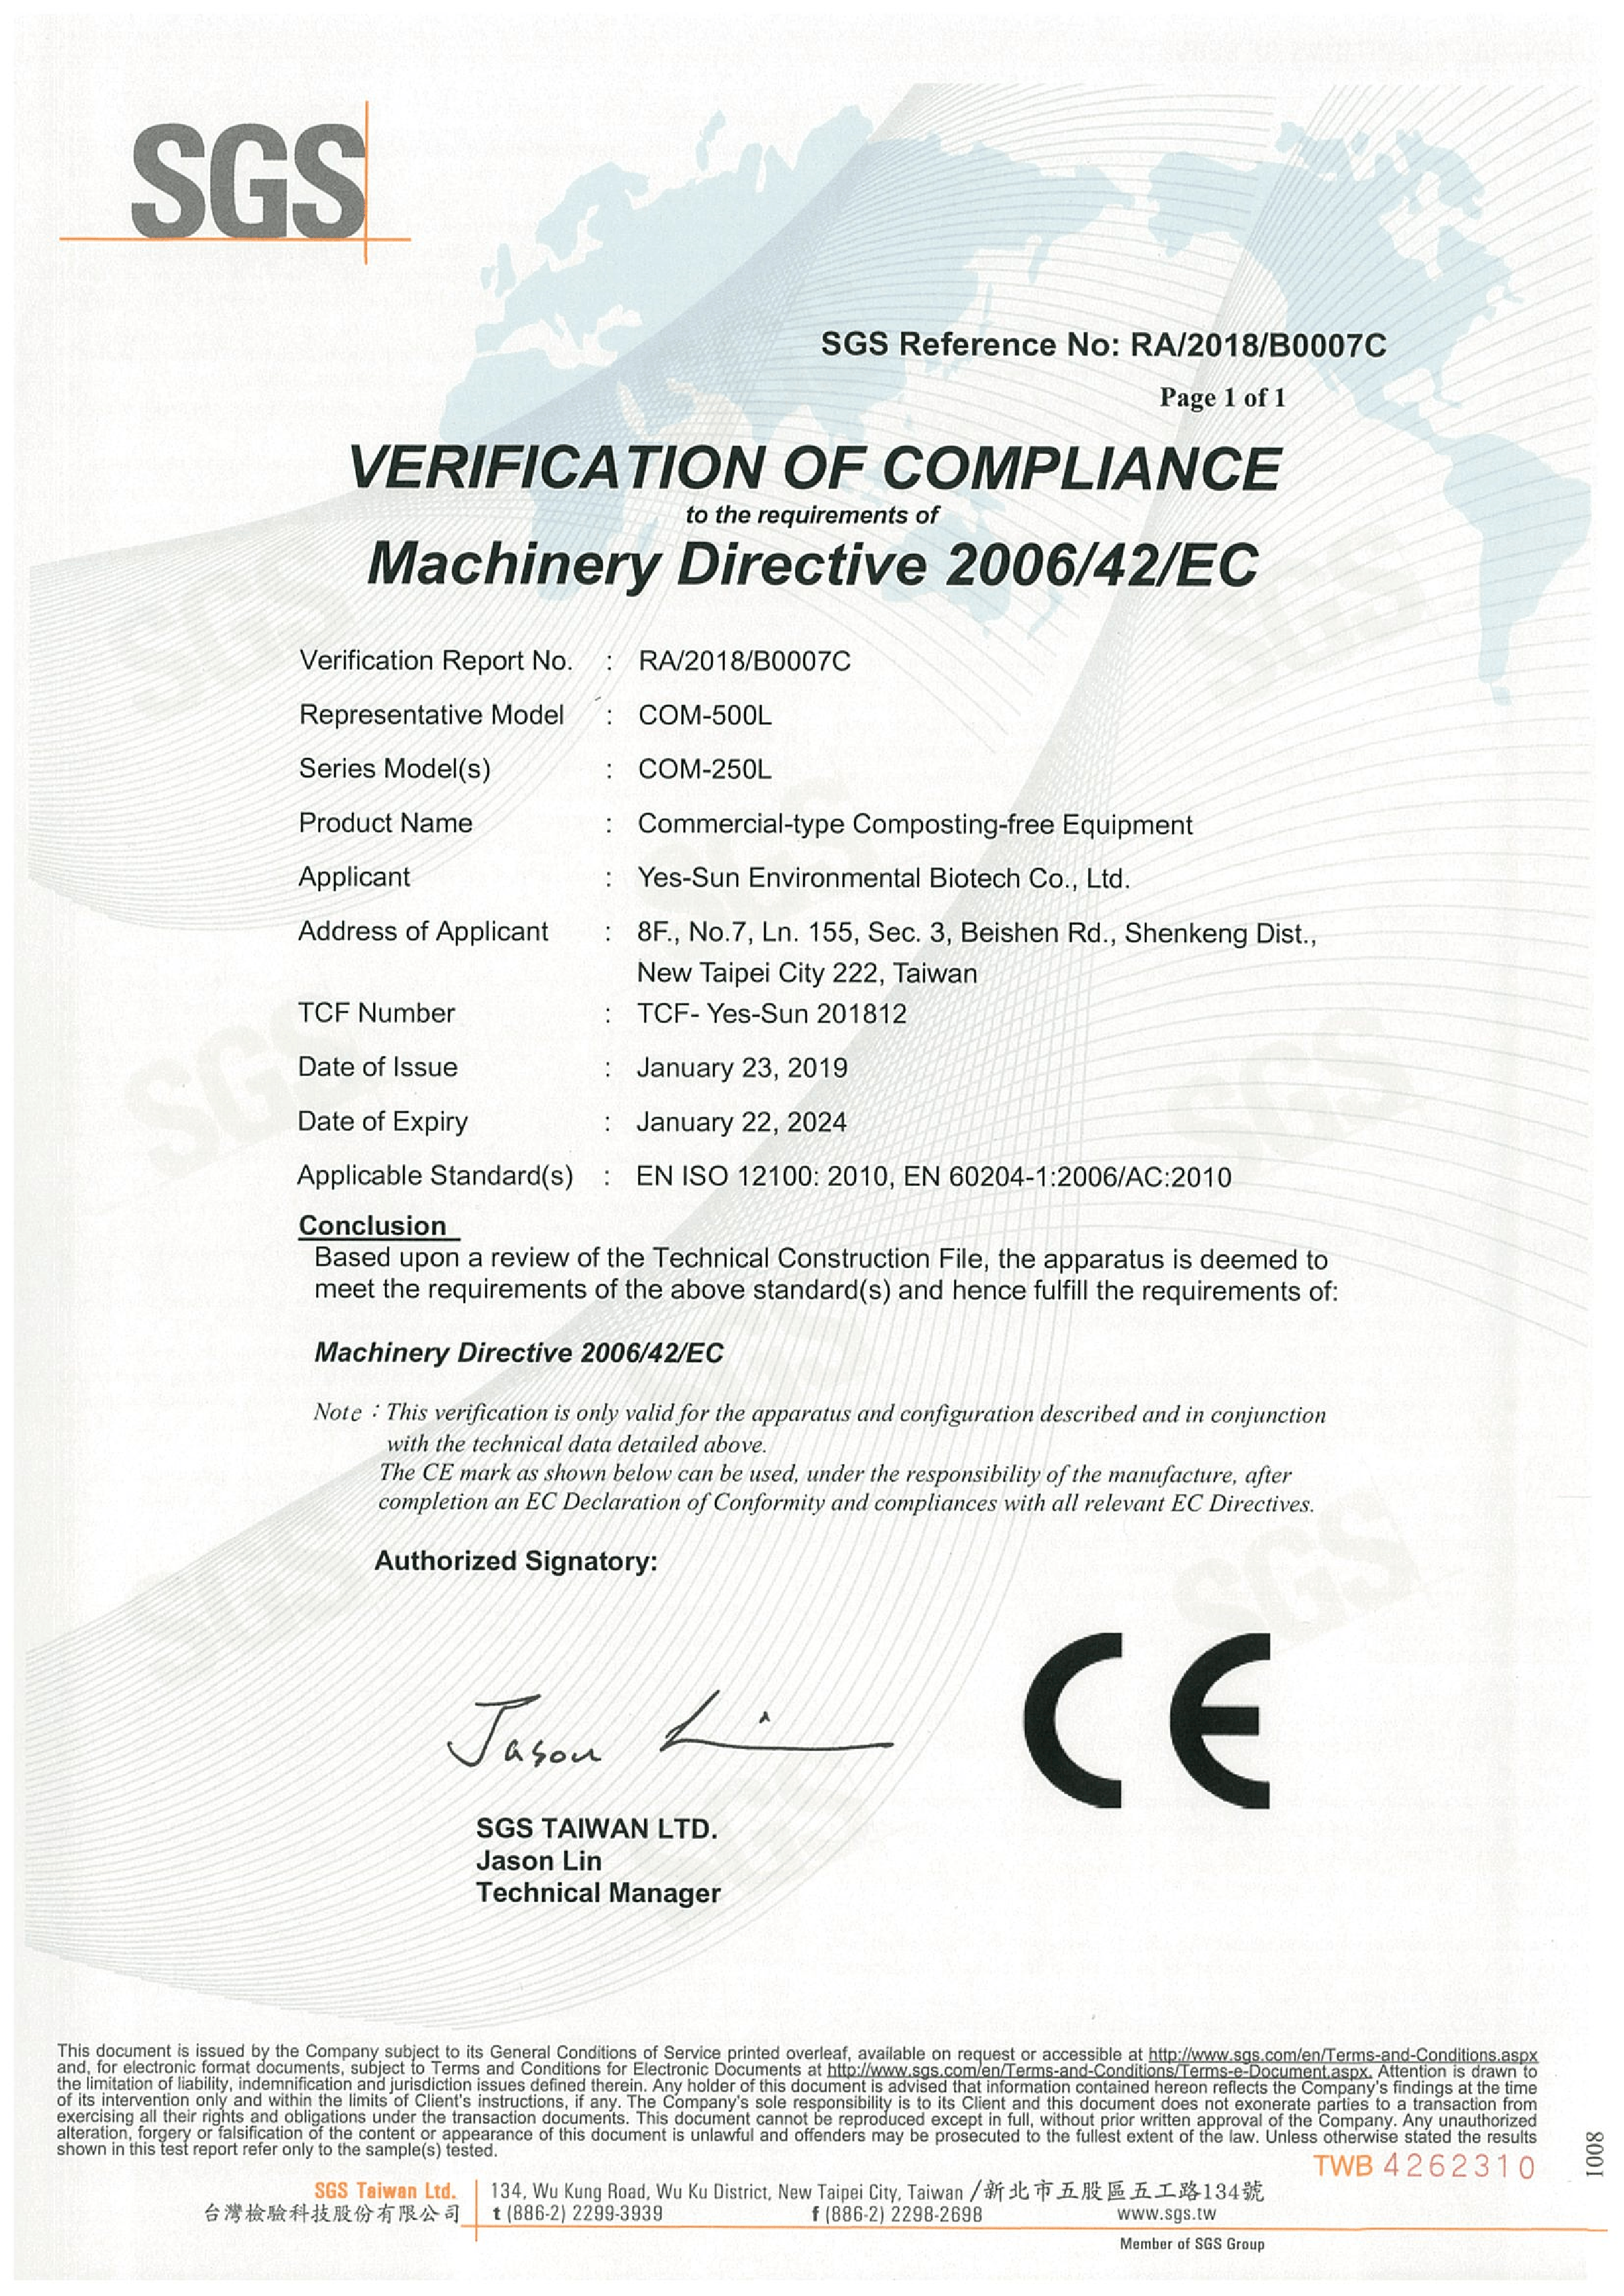 Commercial-type Composting-free equipment has be certificated with CE standard (Machinery Directive 2006/42/EC)